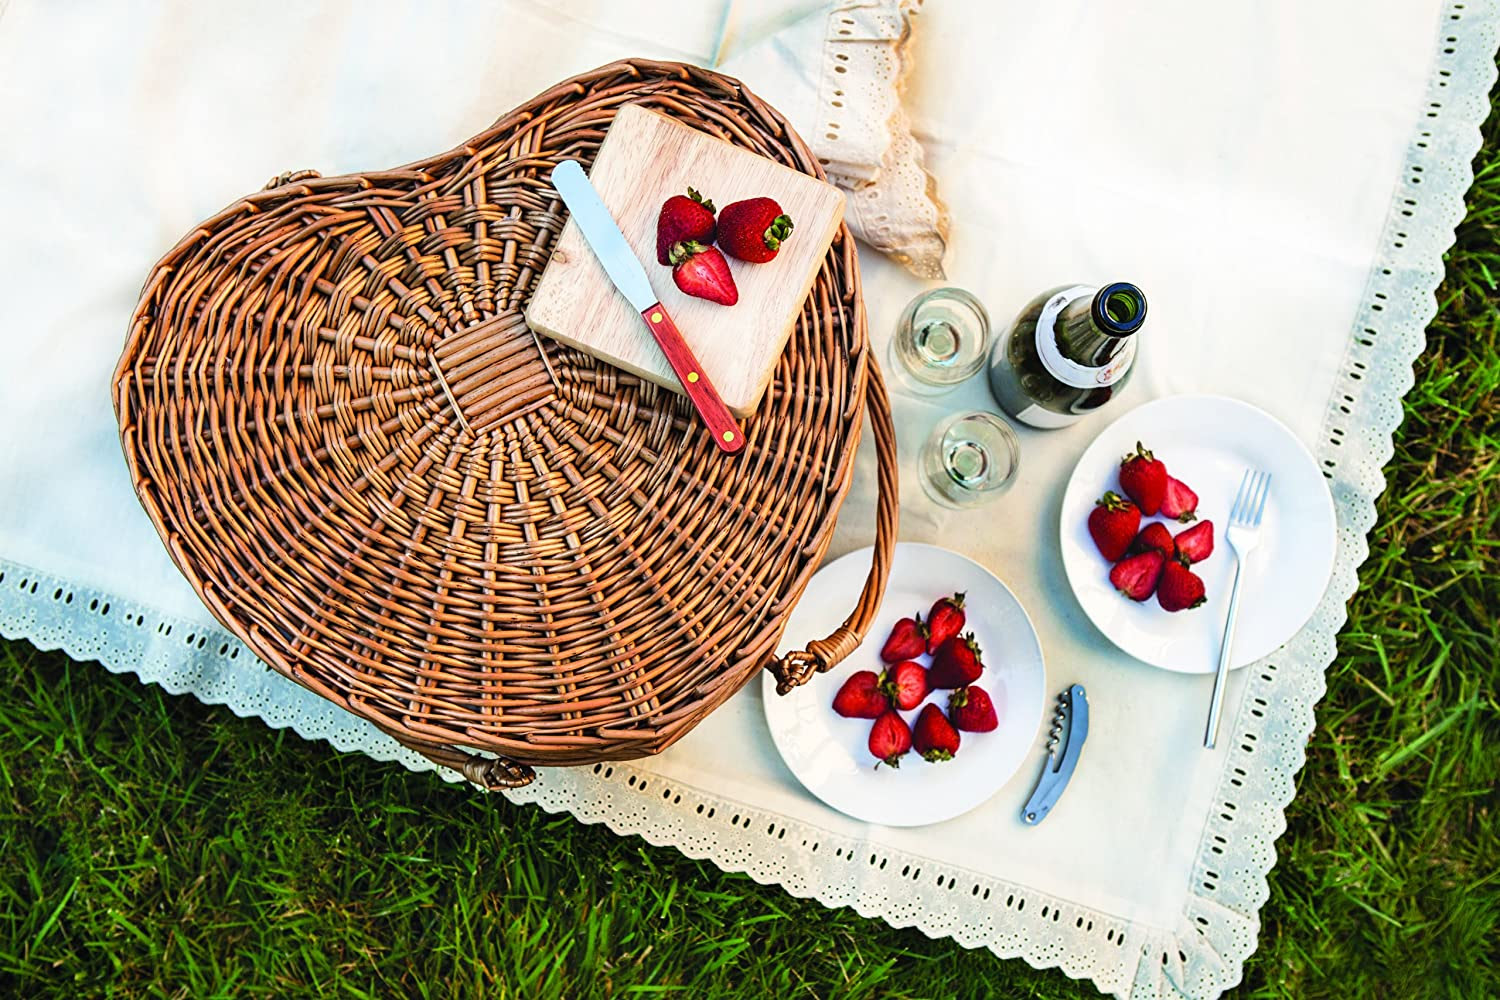 Wine and Cheese Willow Picnic Basket for Two